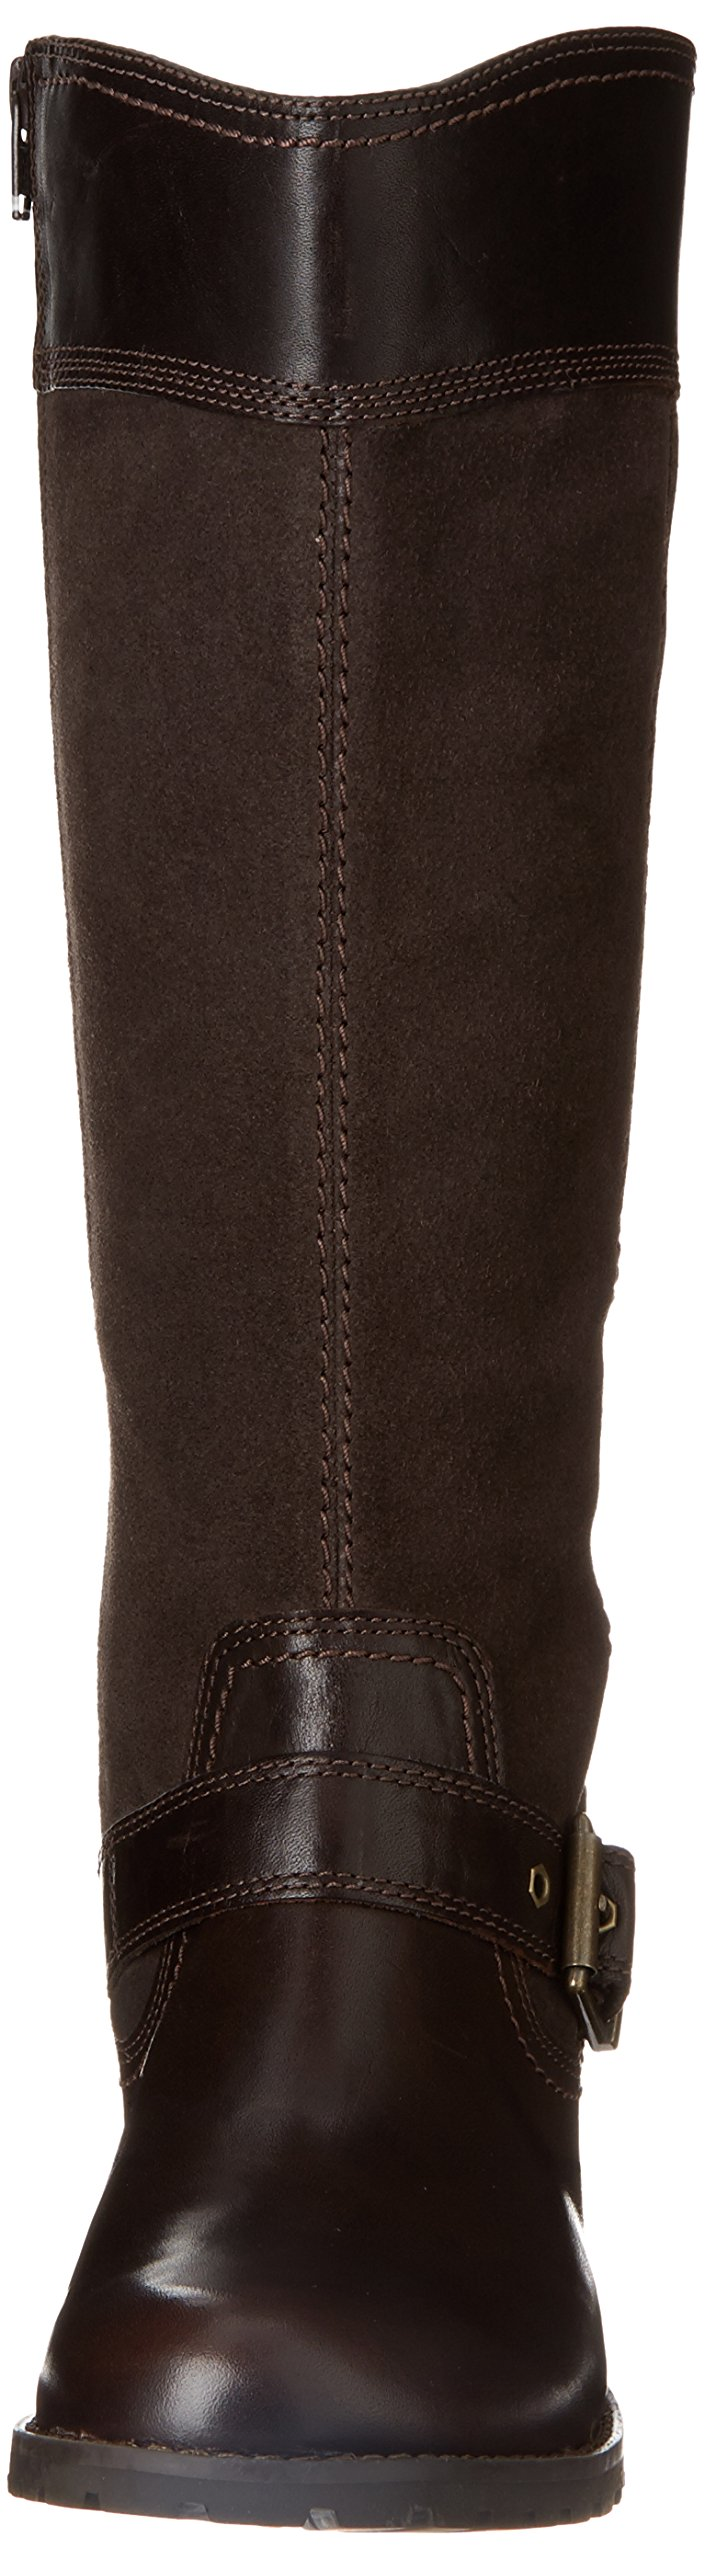 Timberland Women's EK Bethel Tall Harness Boot,Brown,6 W US by Timberland (Image #4)